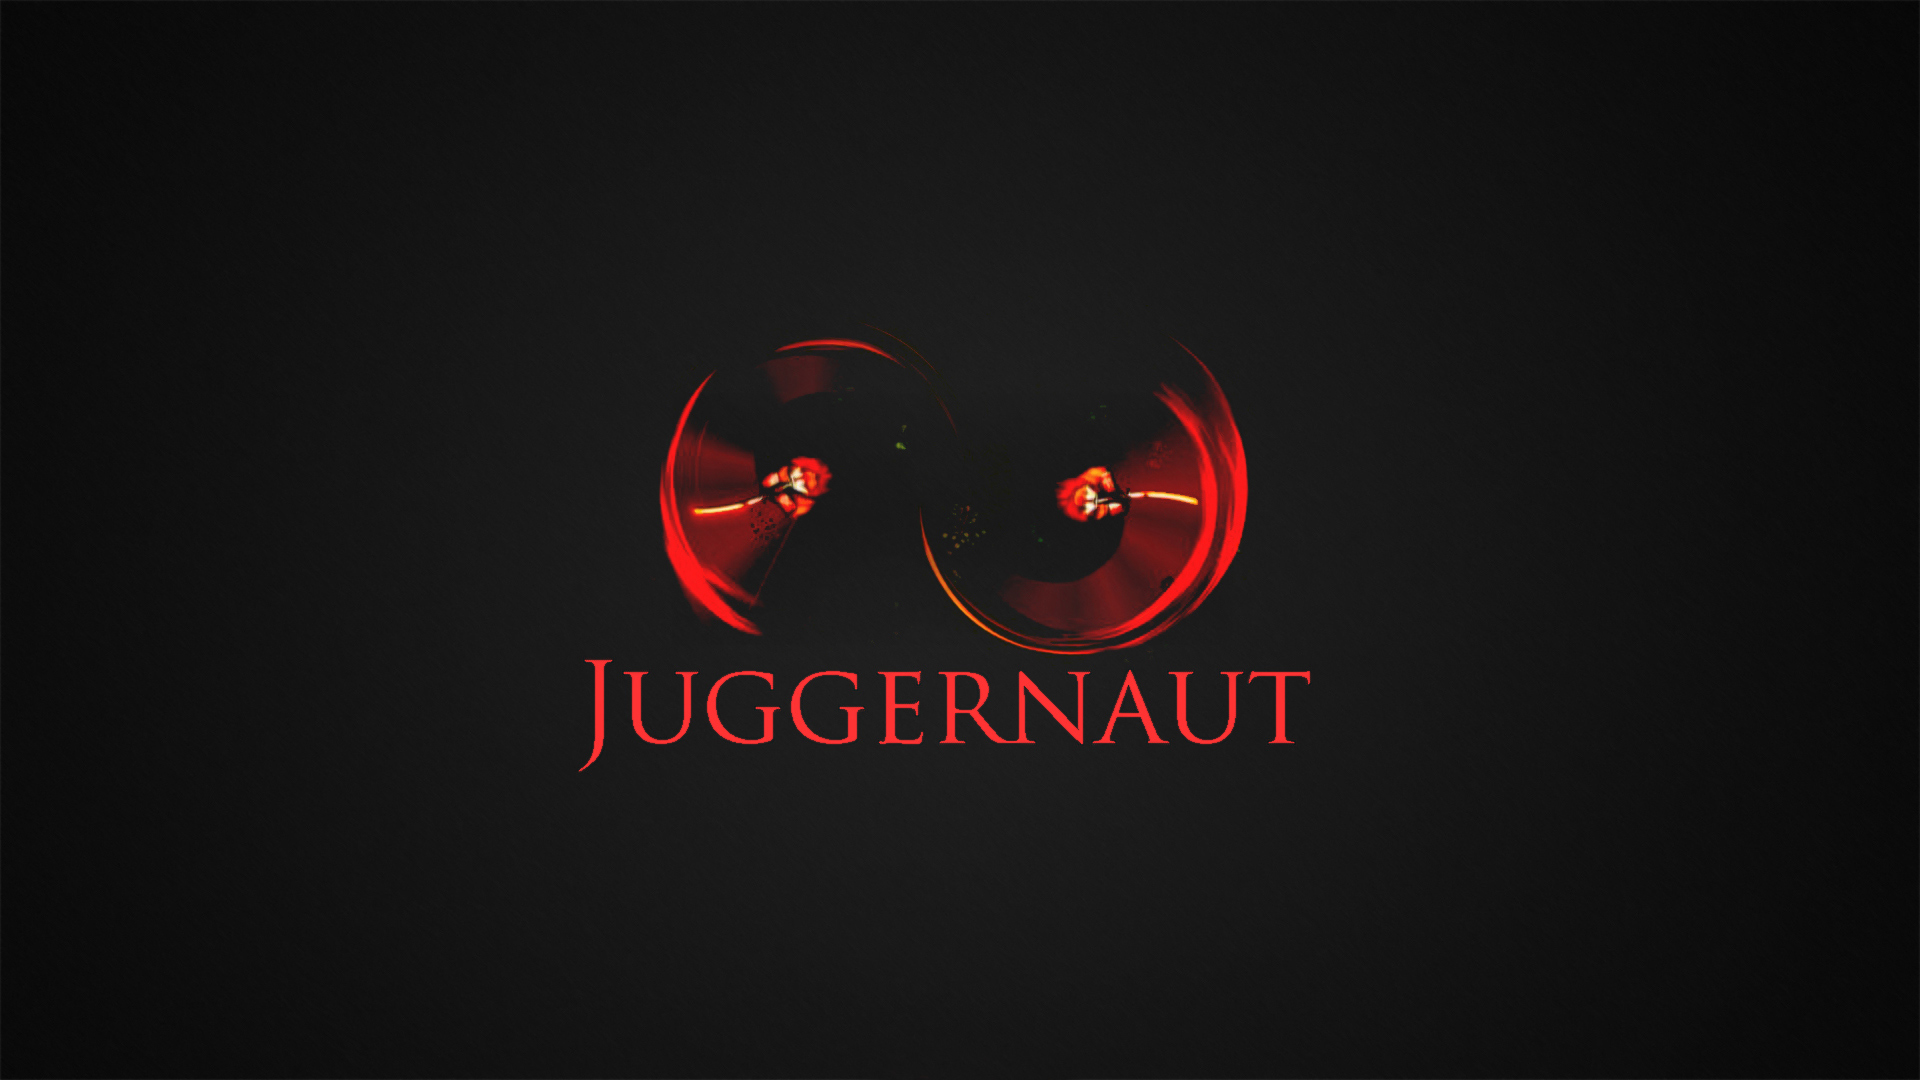 Juggernaut Blade Fury Dota 2 3k Wallpaper HD 1920x1080